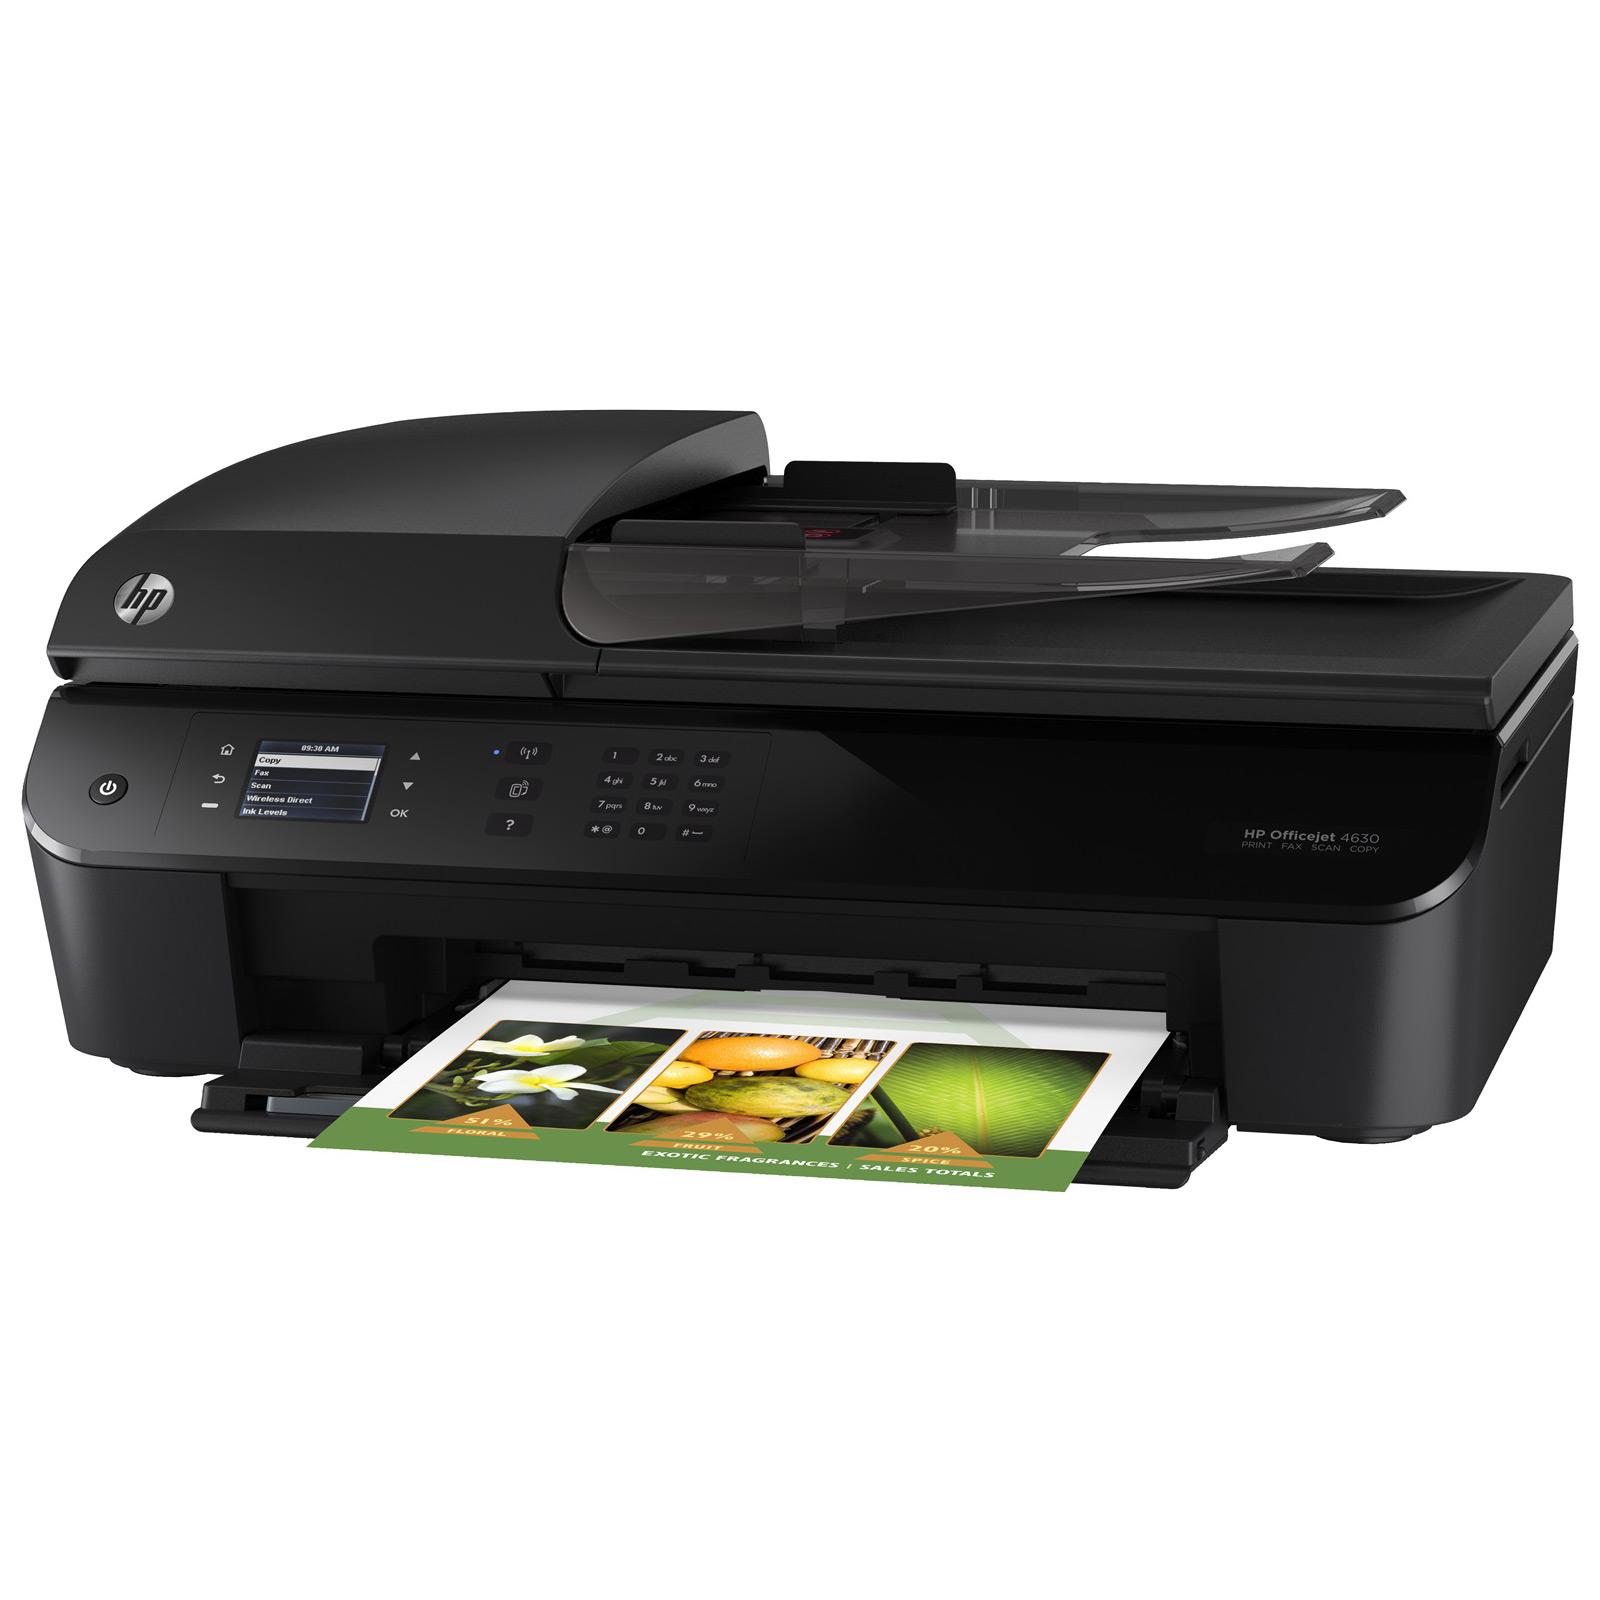 pilote pour imprimante hp officejet 4630